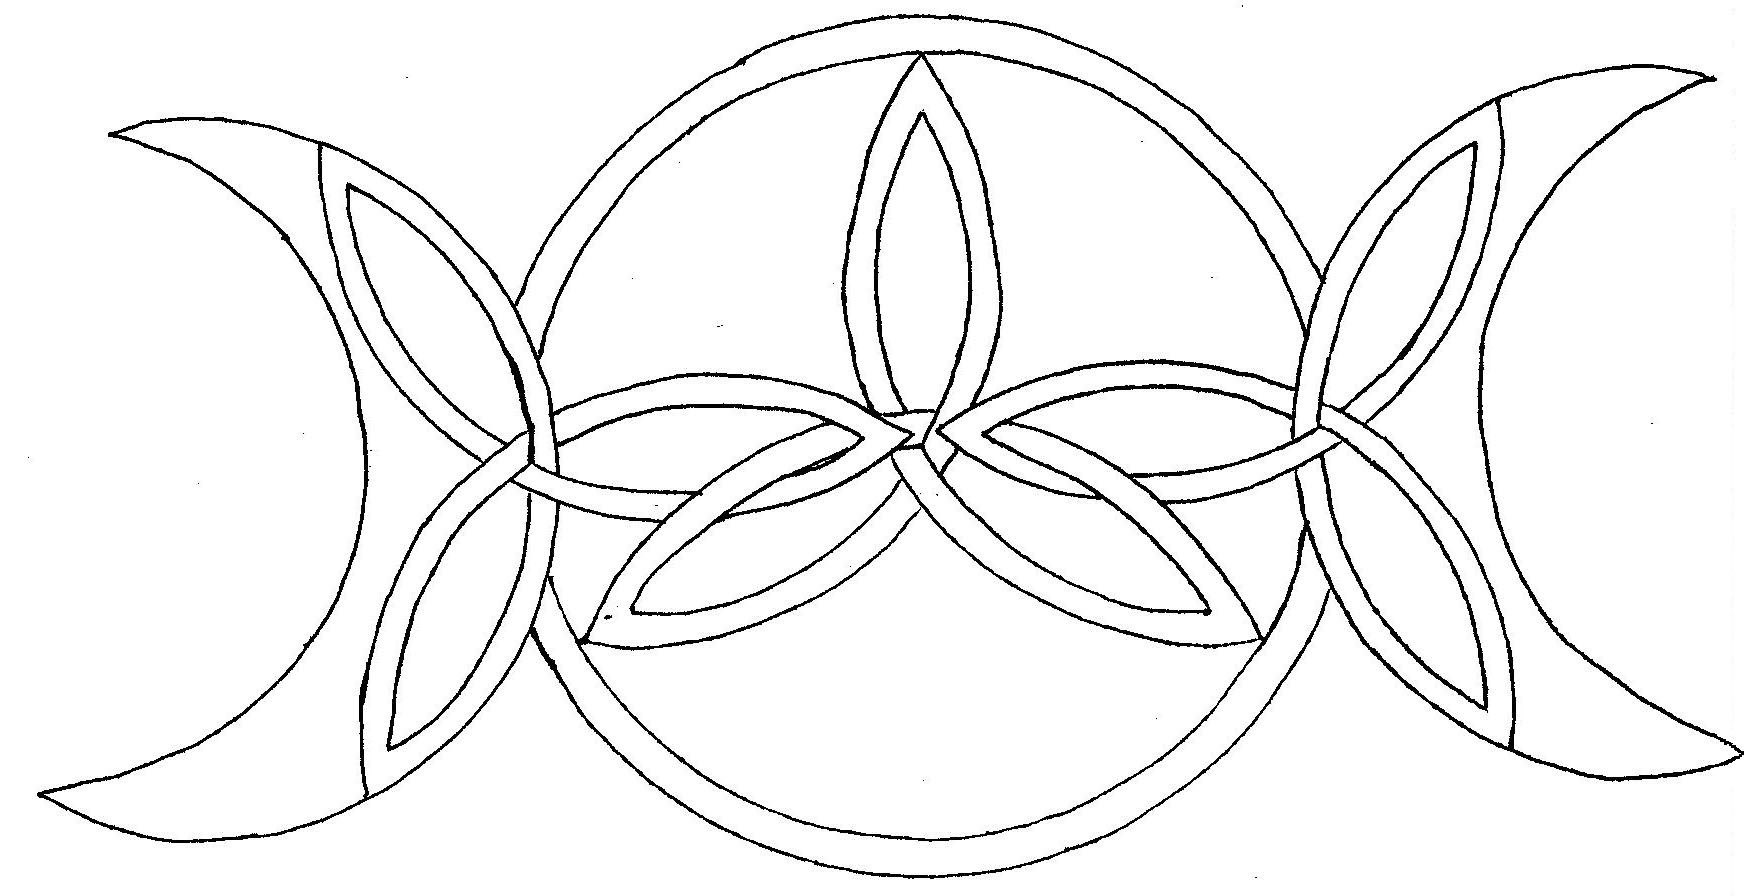 Httpfc06iantartfs12i2006269d5 triple goddess knot fun with knot work again the idea of the triple goddess is far reaching and she has many names throughout the world buycottarizona